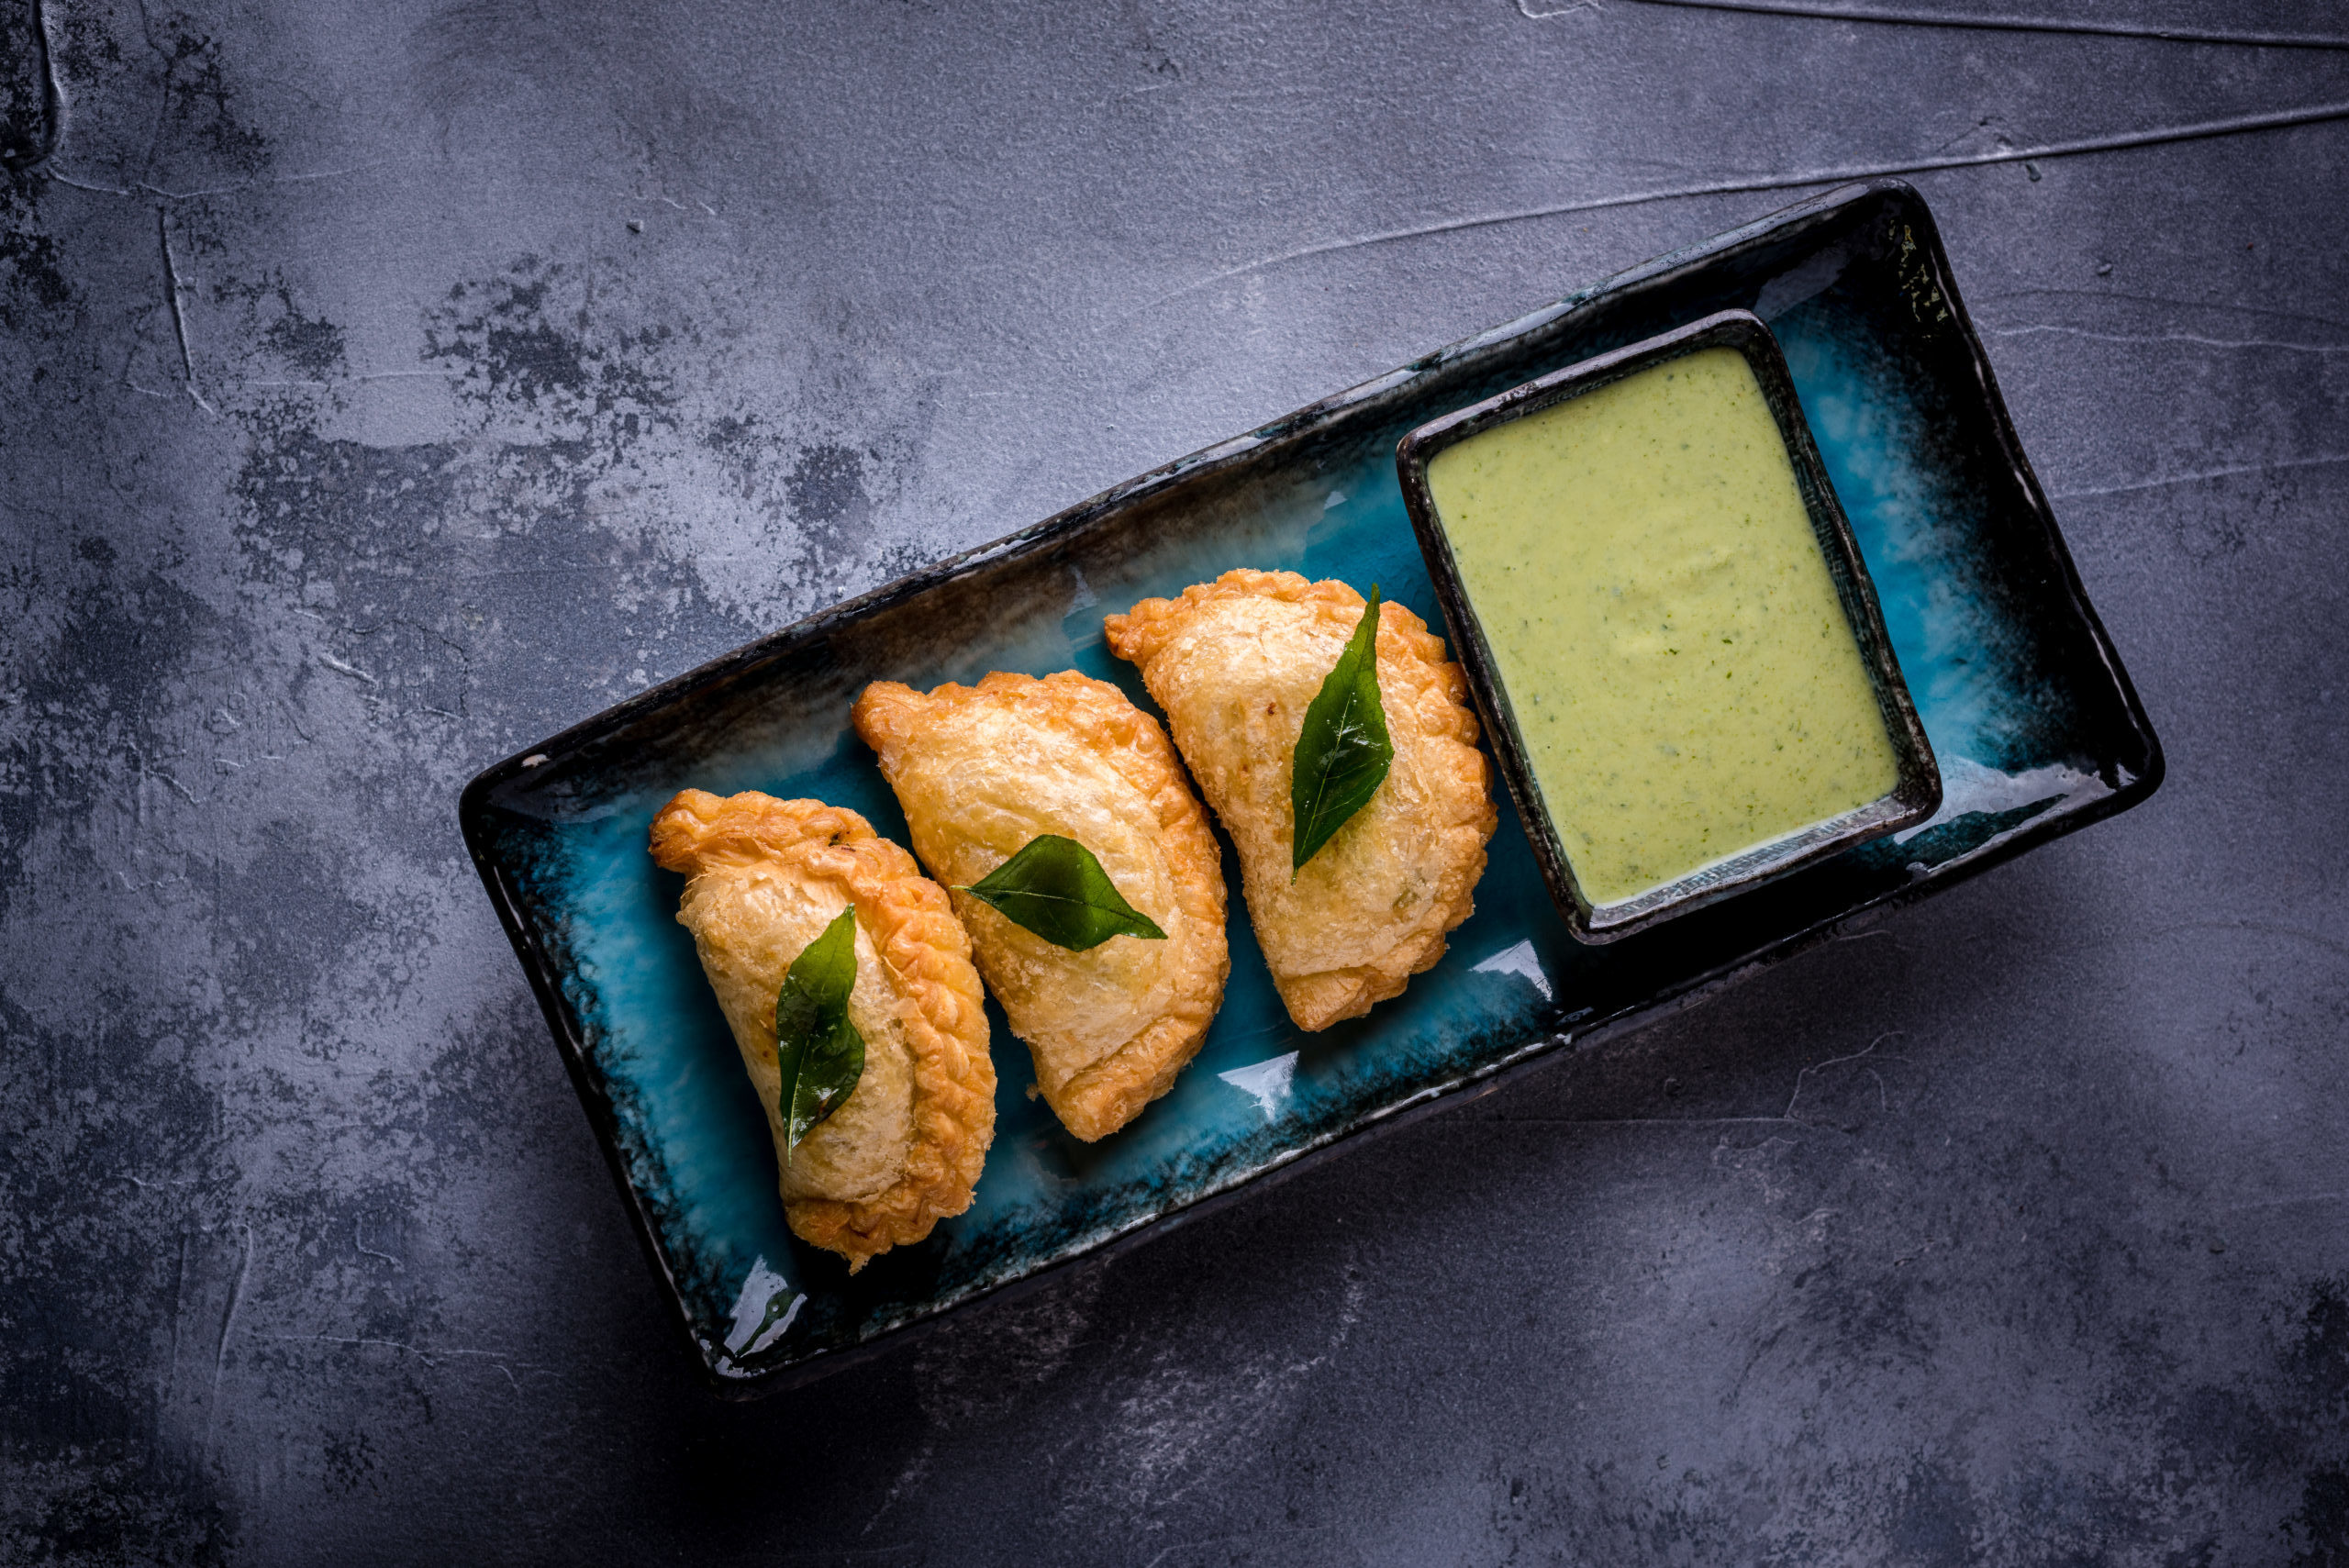 Award Winning Authentic SE Asian Cuisine at Sticky Mango: Chicken Curry Puffs Starter